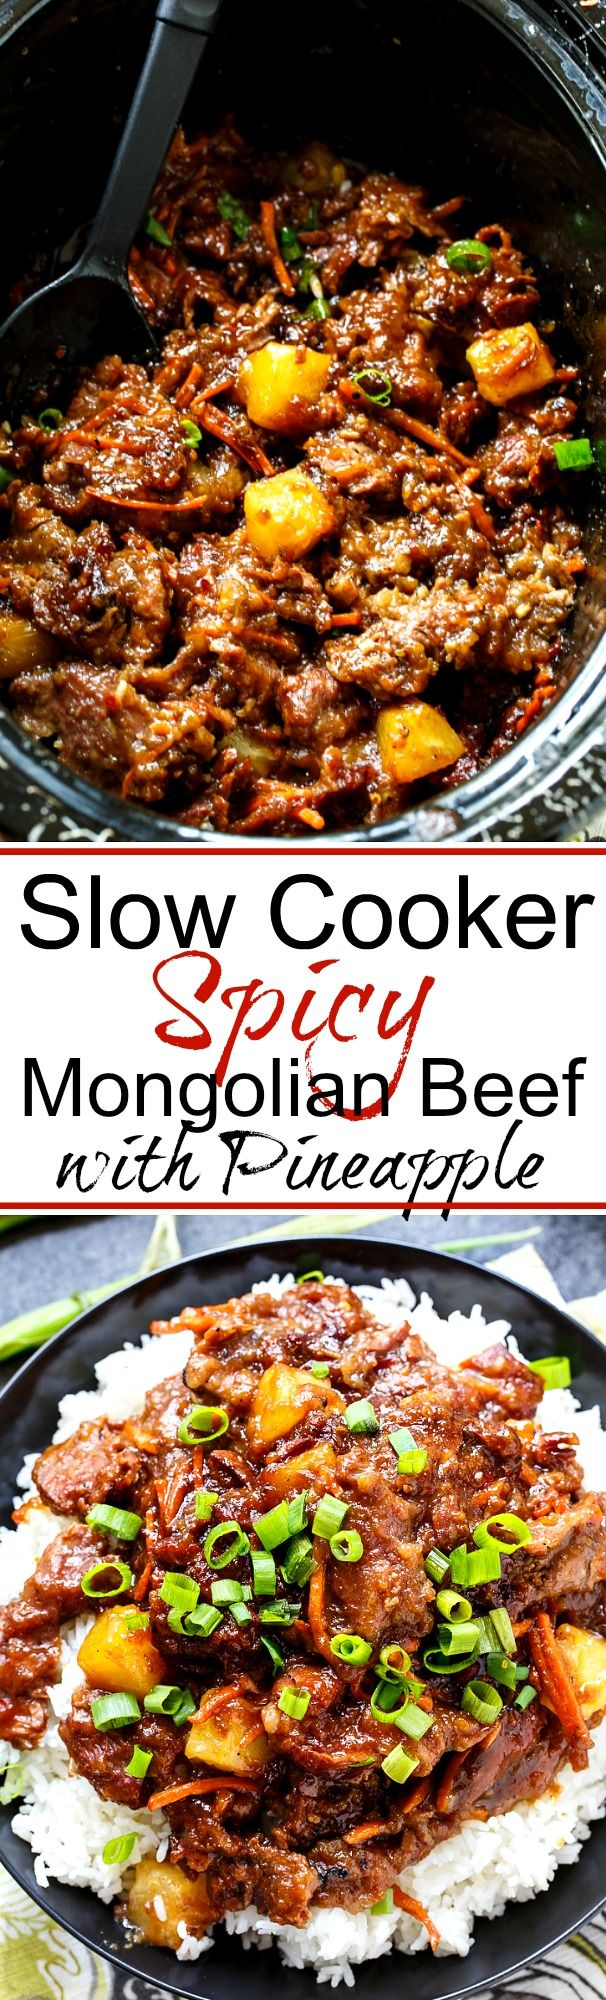 Slow Cooker Spicy Mongolian Beef with Pineapple